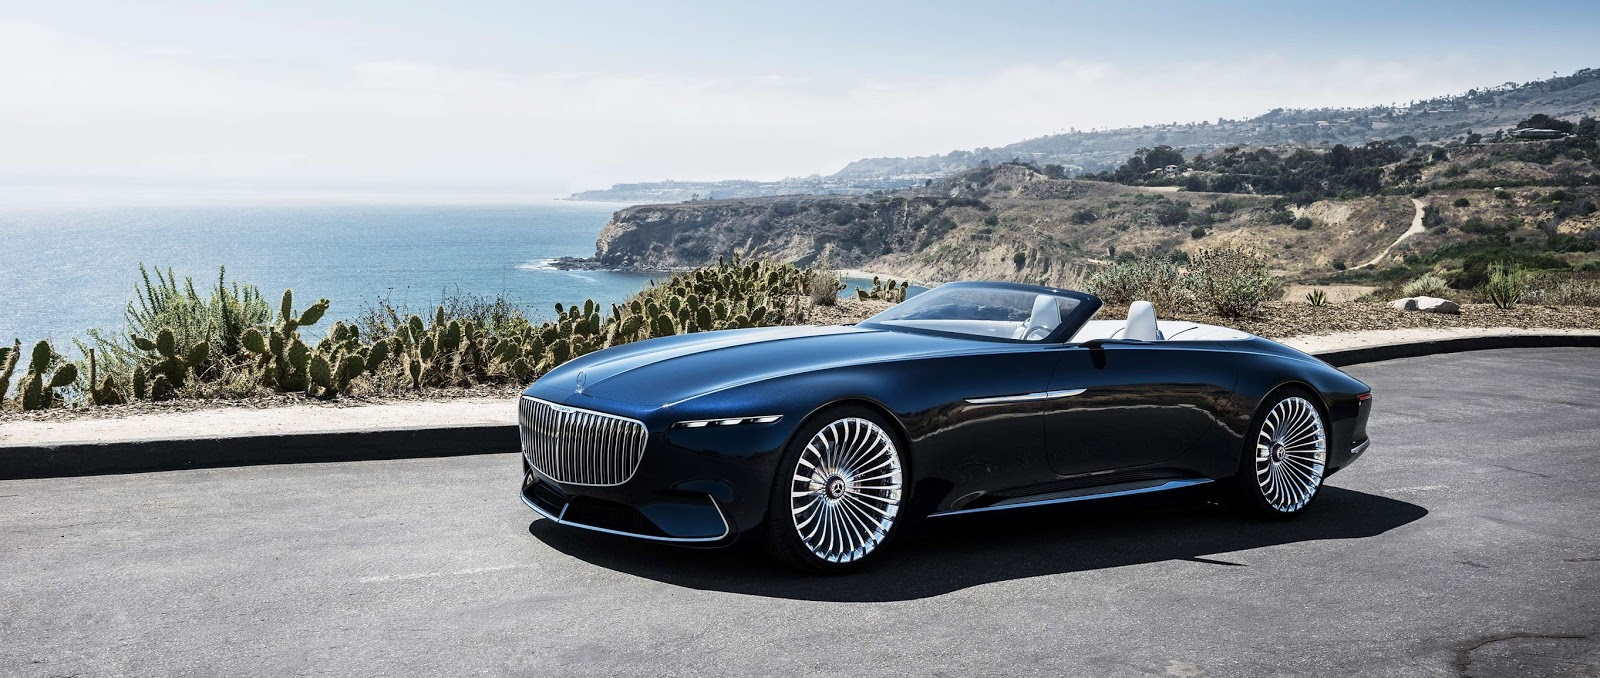 Lifestyle and luxury mercedes maybach 6 cabriolet maybachs land even standing the design is motion design vision mercedes maybach 6 cabiolet courtsey daimler ag buycottarizona